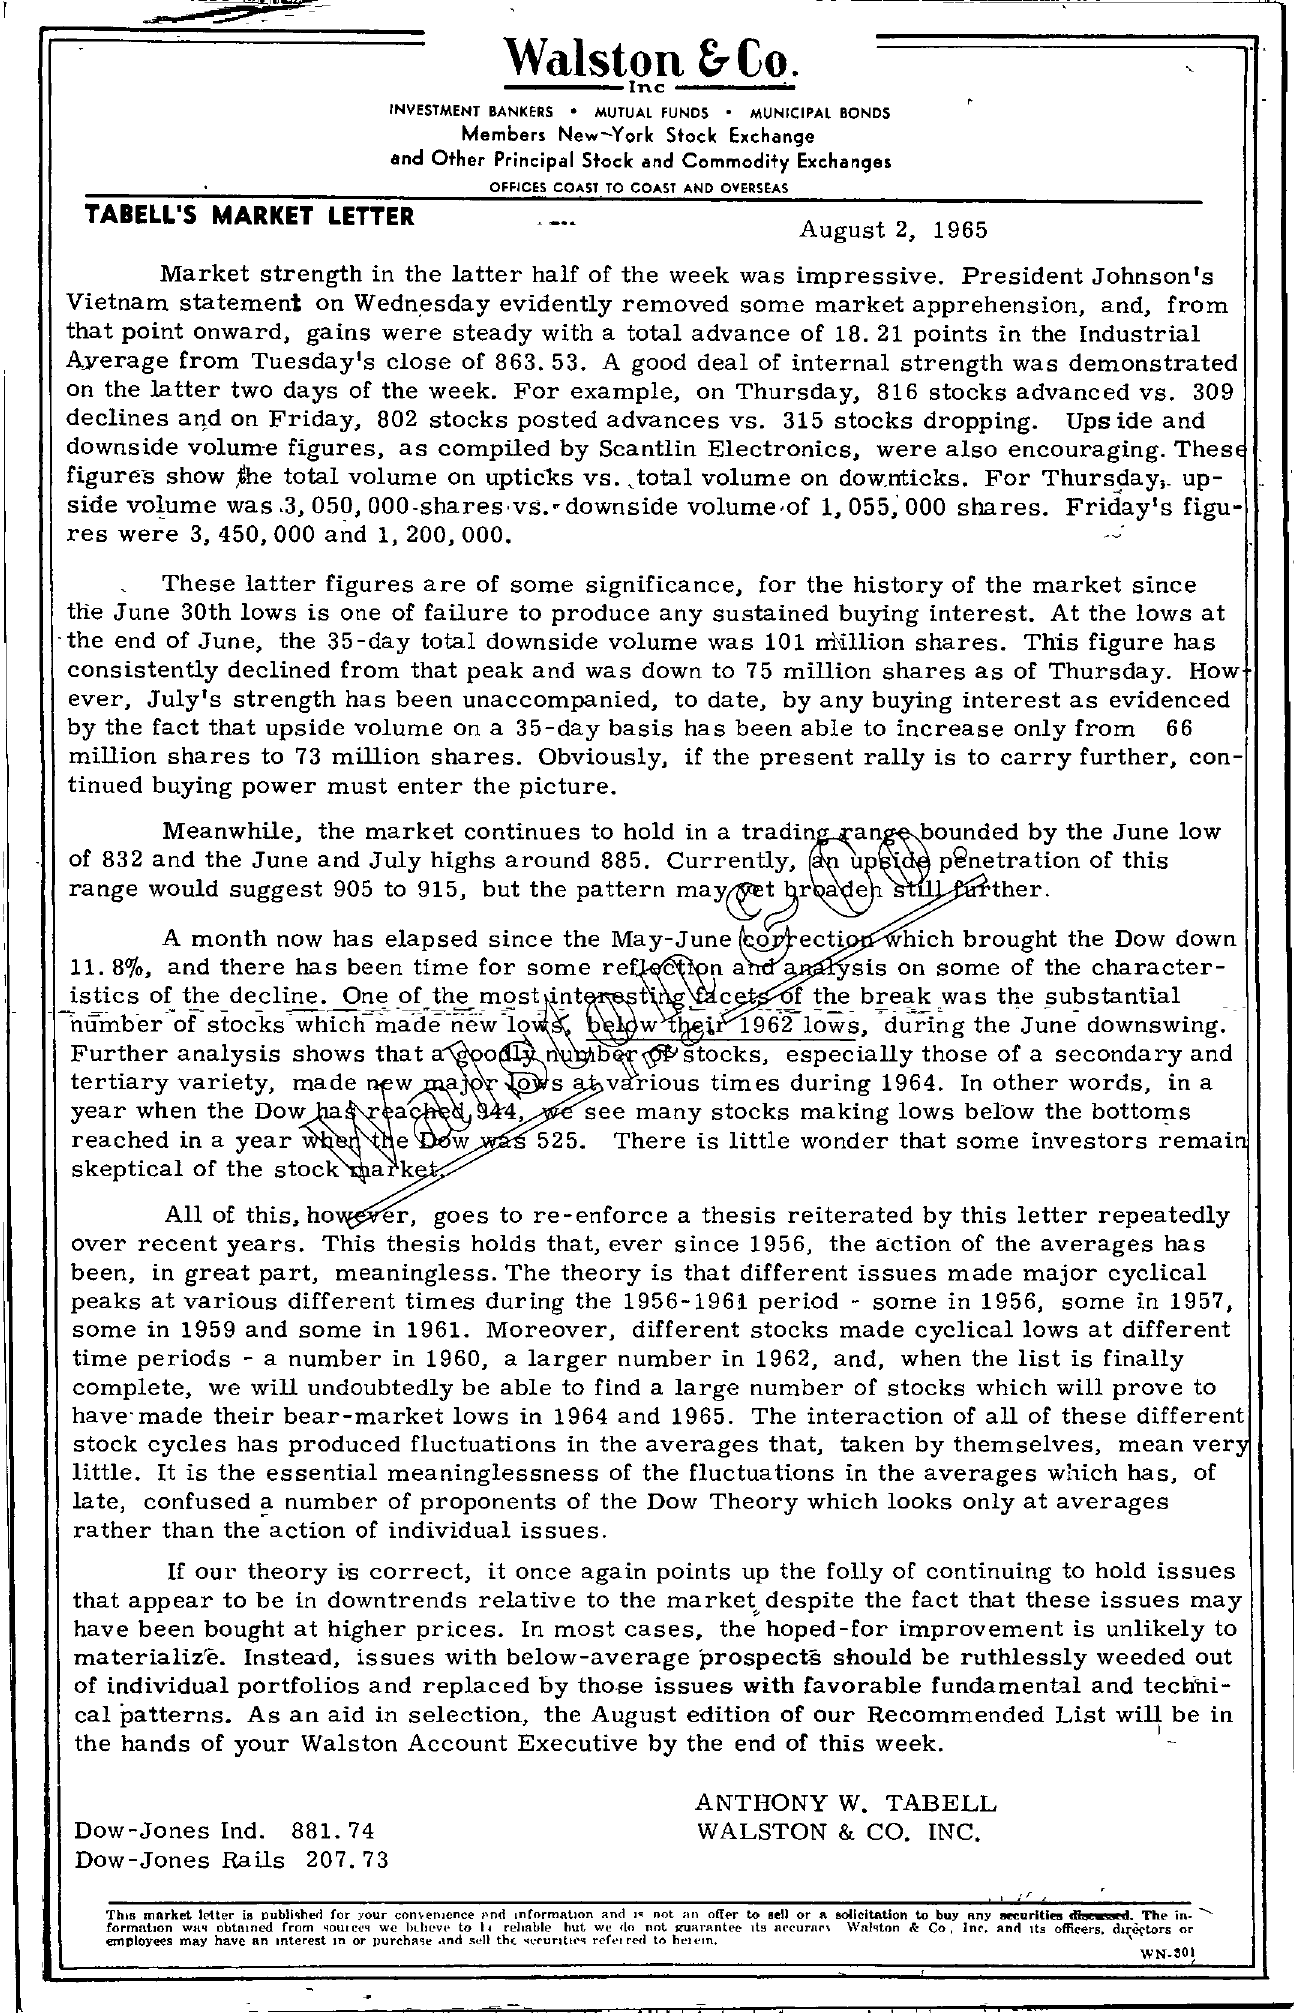 Tabell's Market Letter - August 02, 1965 page 1